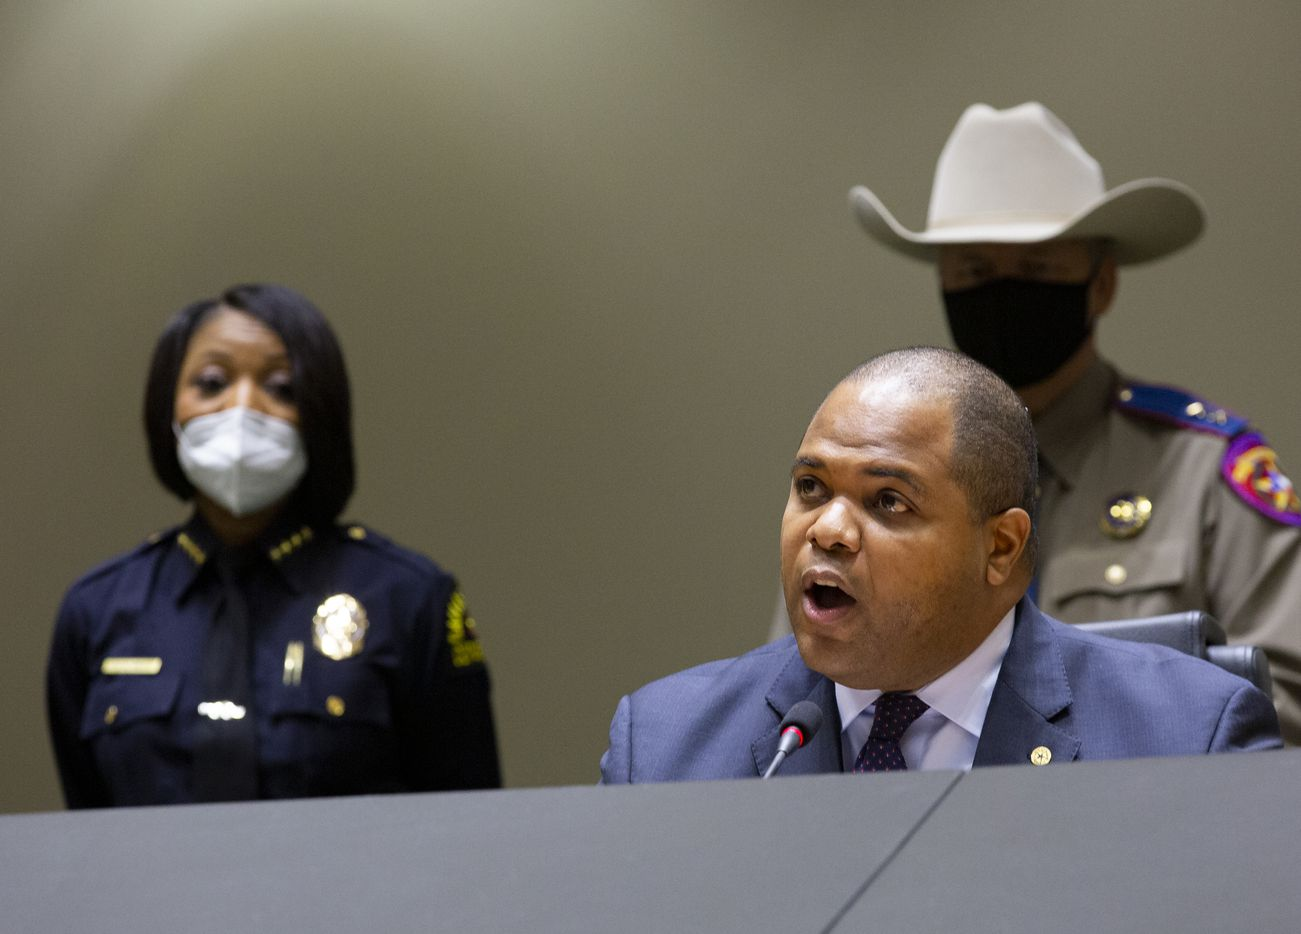 Dallas Police Chief Reneé Hall (left) listens as Dallas Mayor Eric Johnson speaks at a press conference on protest violence on Tuesday, June 2, 2020 at City Hall in Dallas.